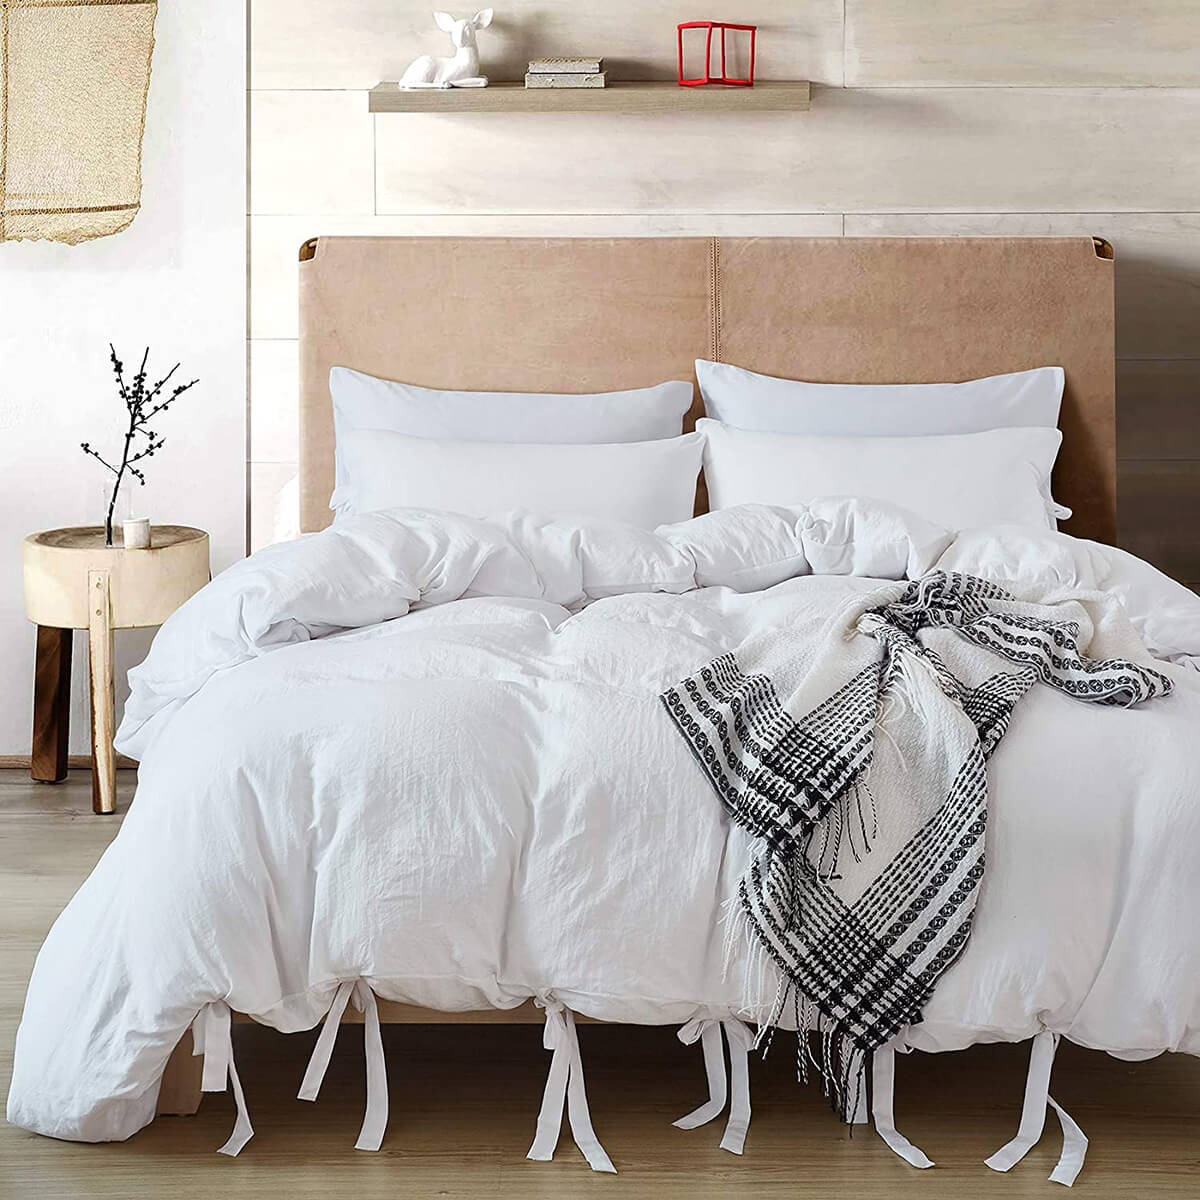 Bowtied and Tufted Washed Microfiber Bedding Set